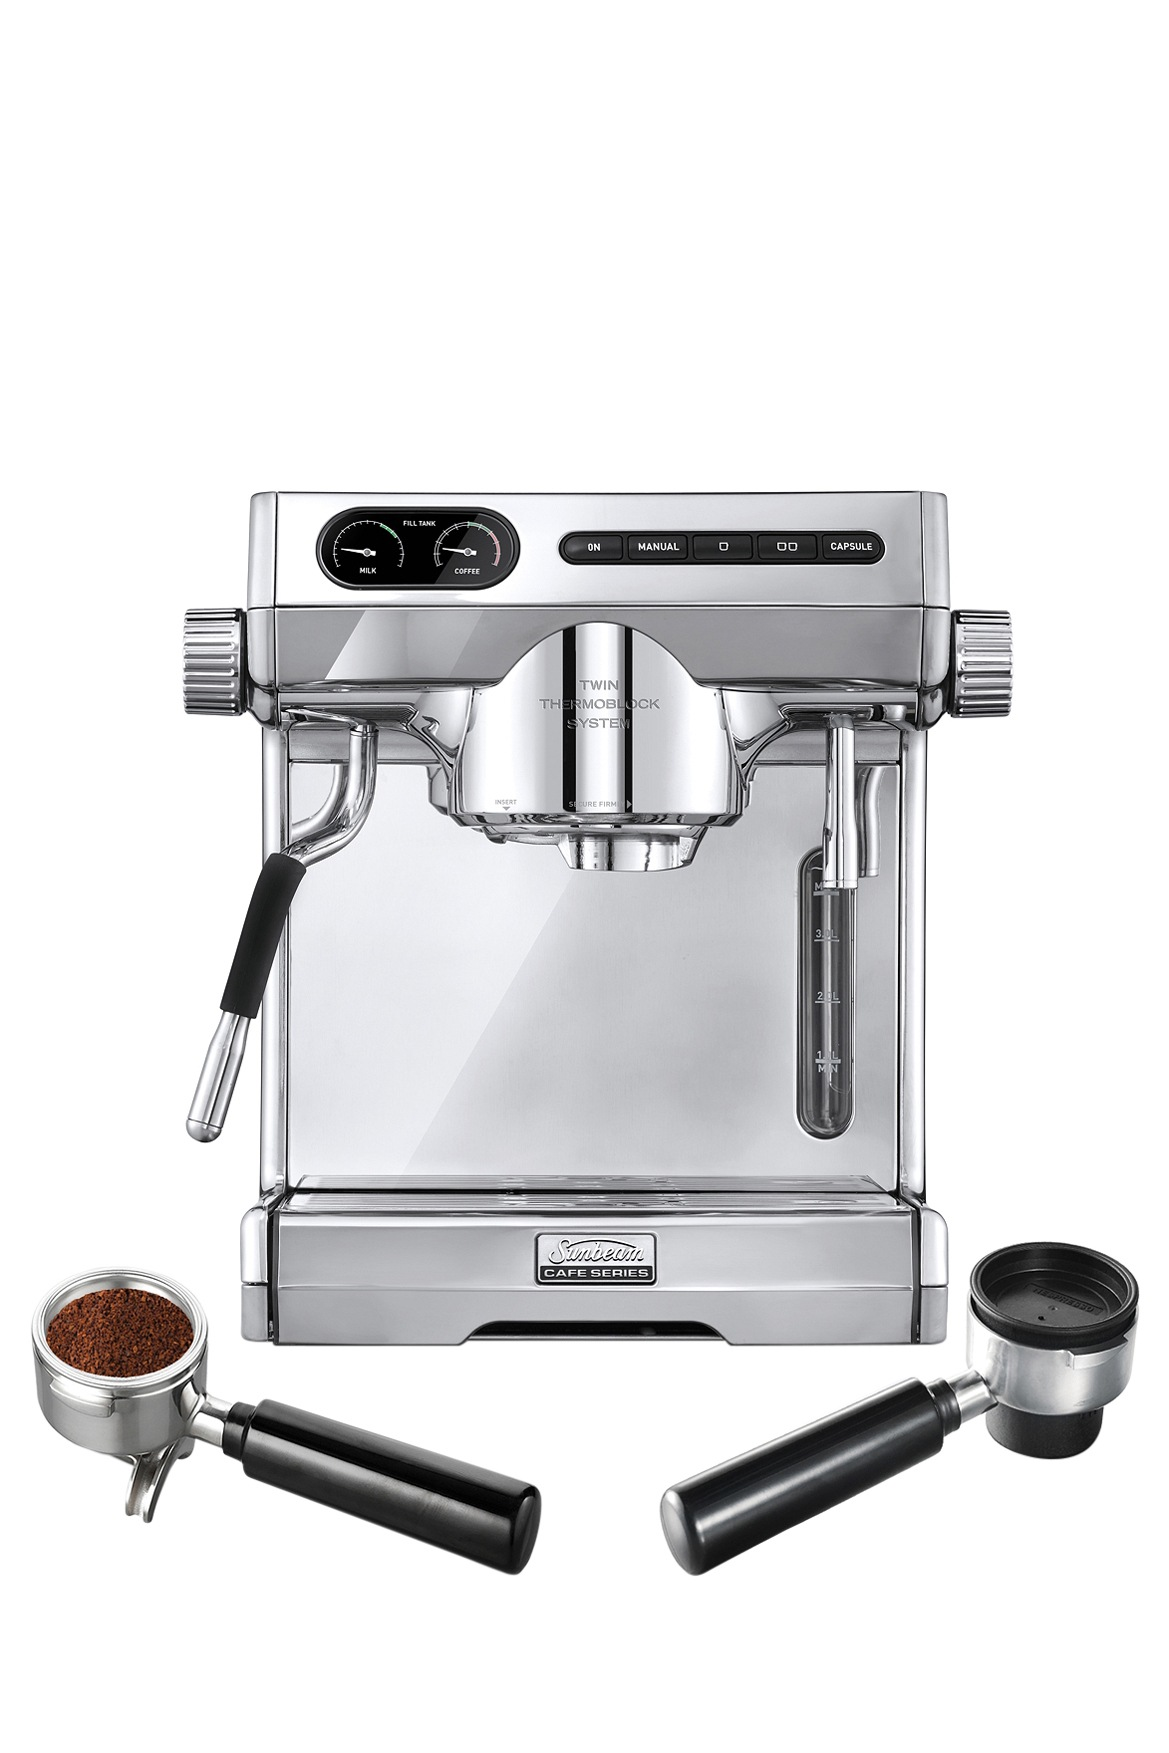 sunbeam em7100 caf series espresso machine plus multi capsule handle stainless polished. Black Bedroom Furniture Sets. Home Design Ideas